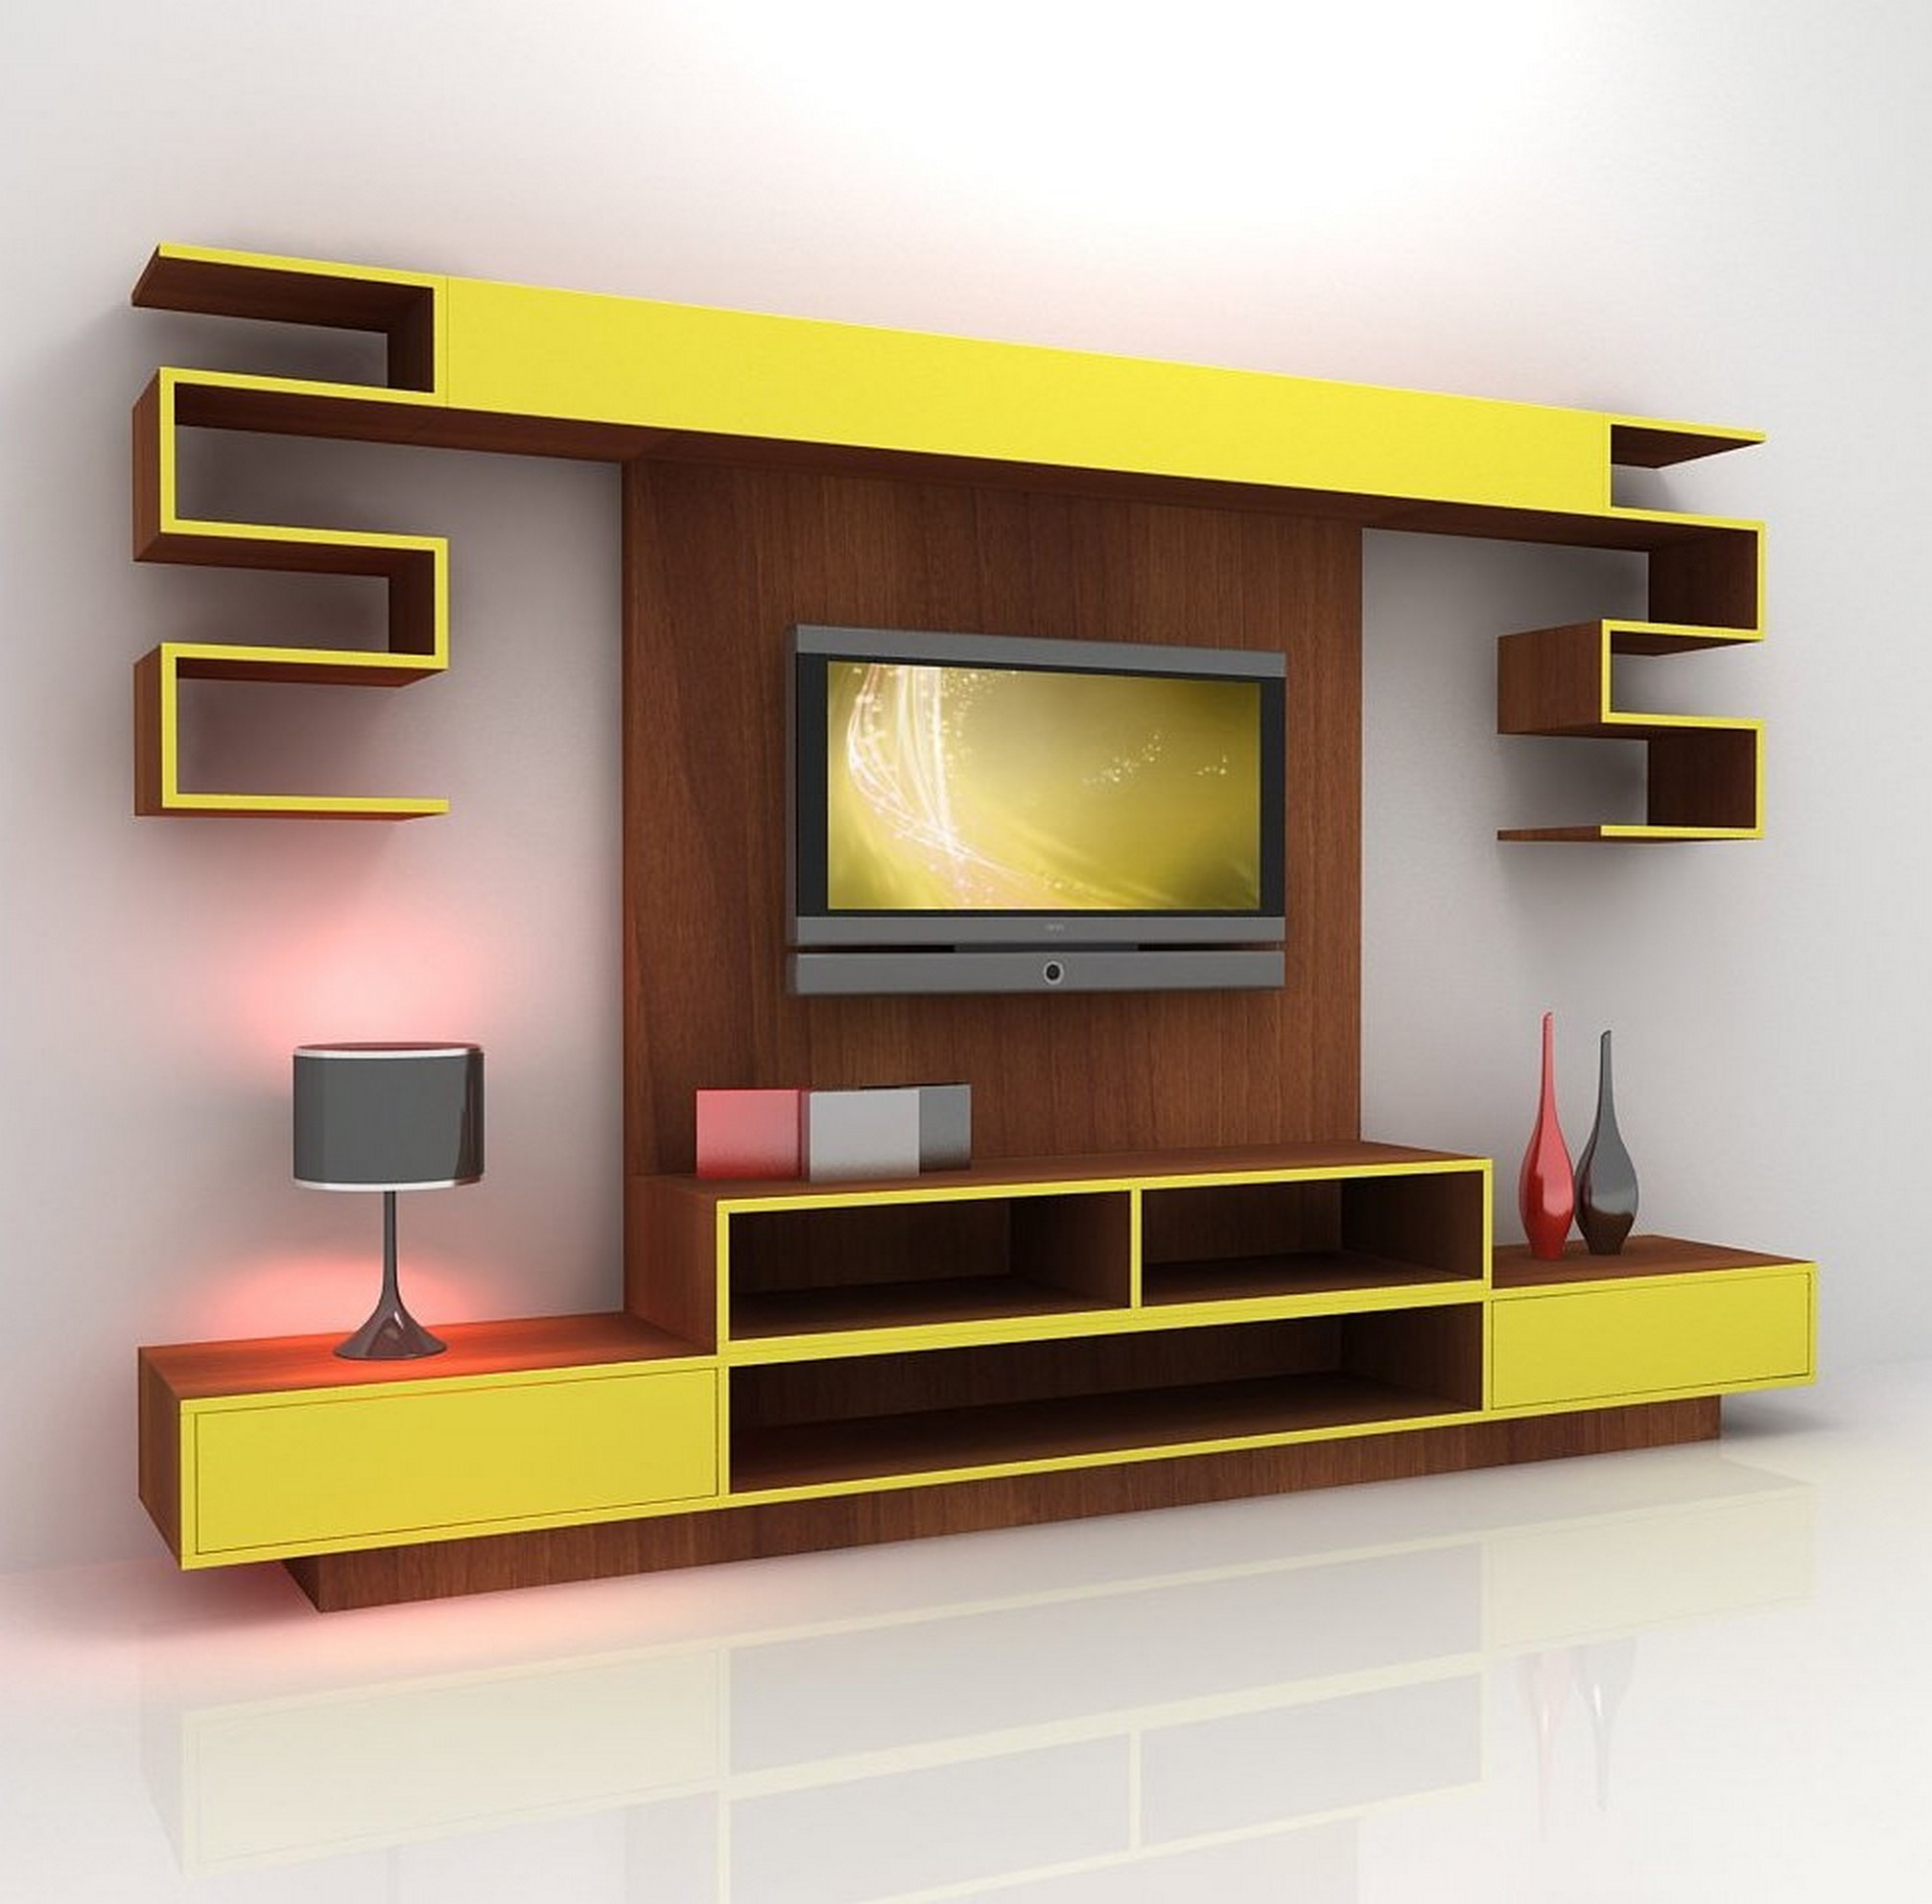 Charmant Modern And Futuristic TV Console Design With Wall Mounted TV Installation  Idea Open Shelves And Desk